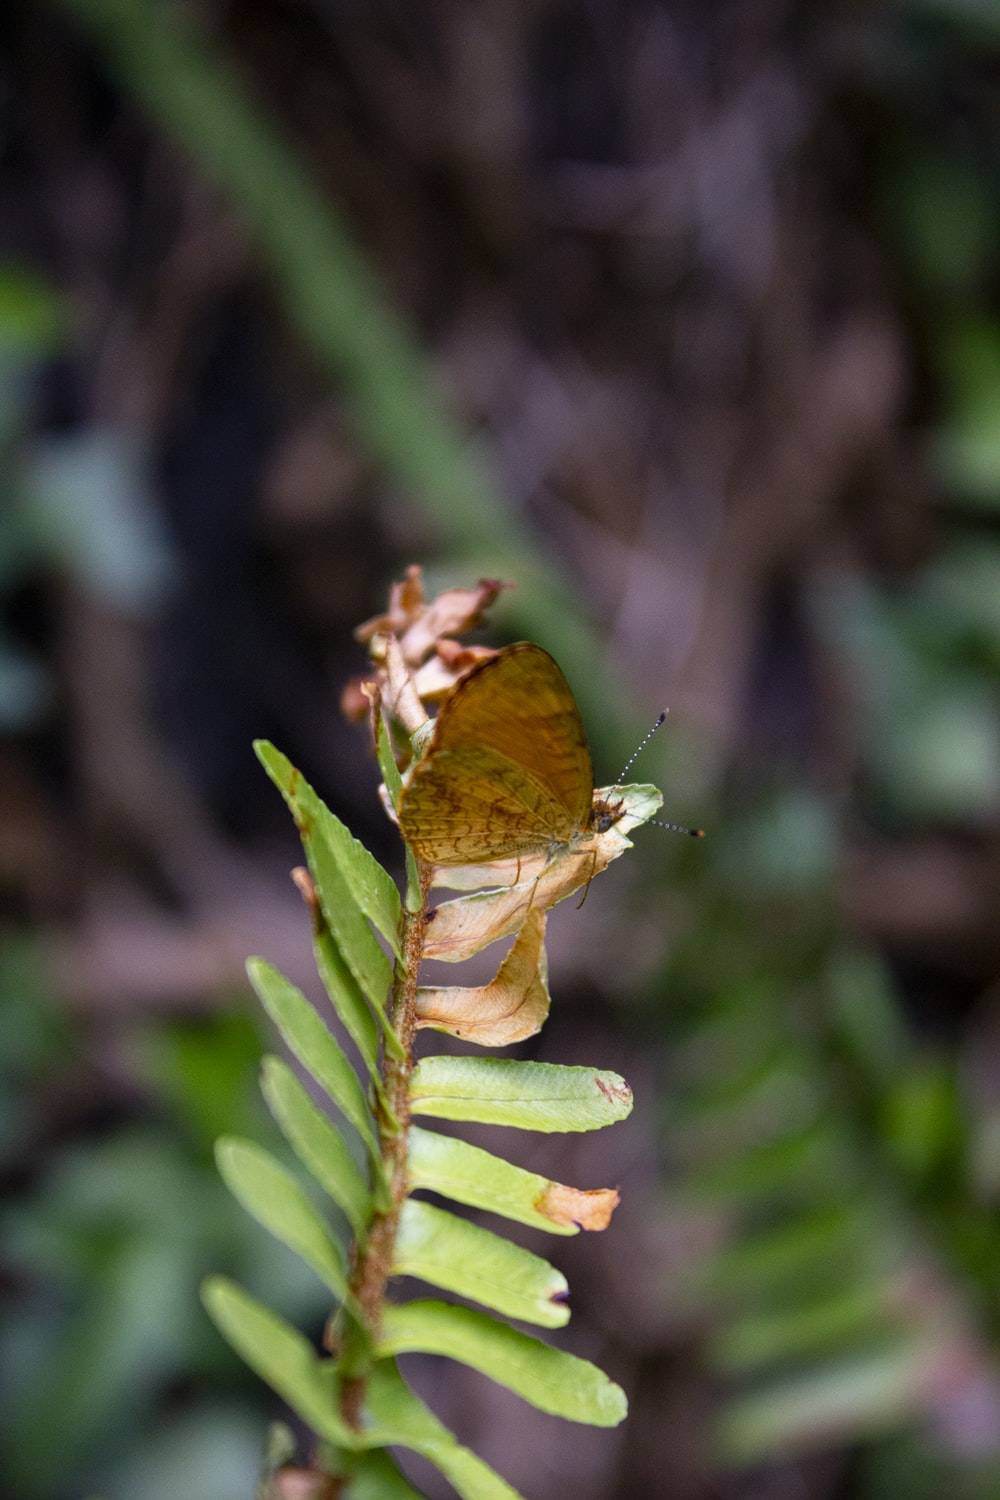 brown butterfly perched on green plant